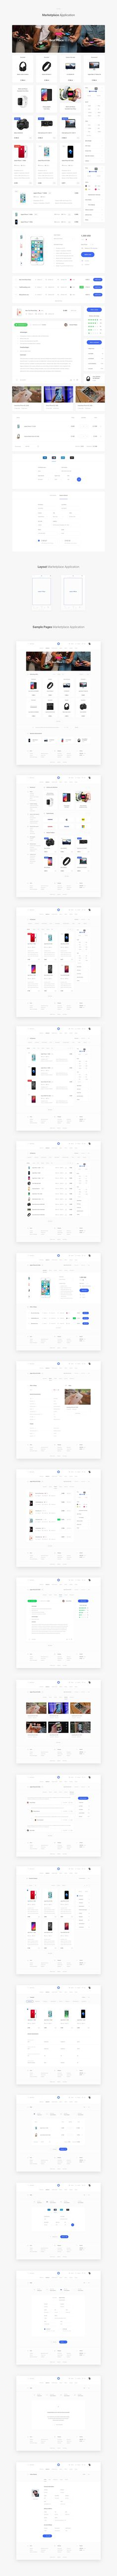 Web Interface, Card, Page by Spline on Table Template, House Template, Project Management Templates, Dashboard Template, Awesome Designs, Website Layout, Text Style, Web Design Inspiration, Minimal Design